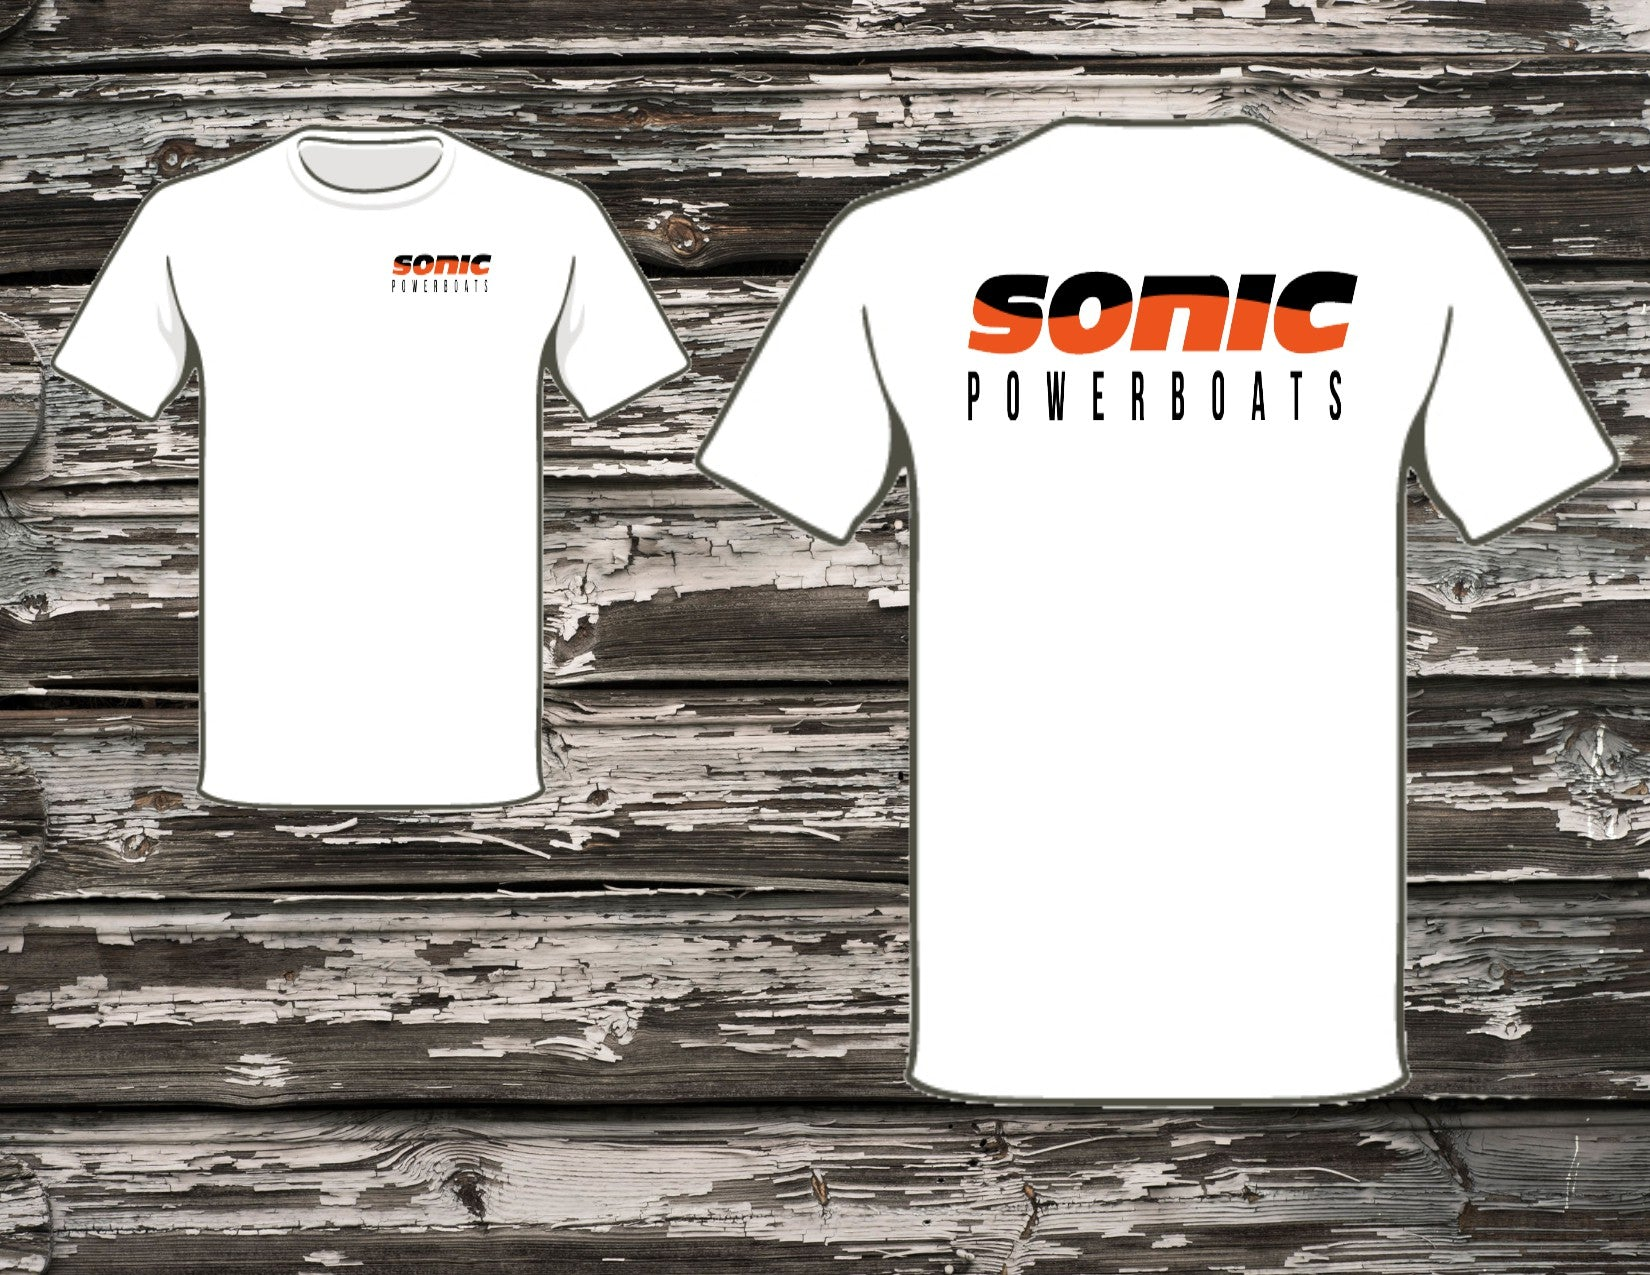 Sonic Powerboats T-Shirt